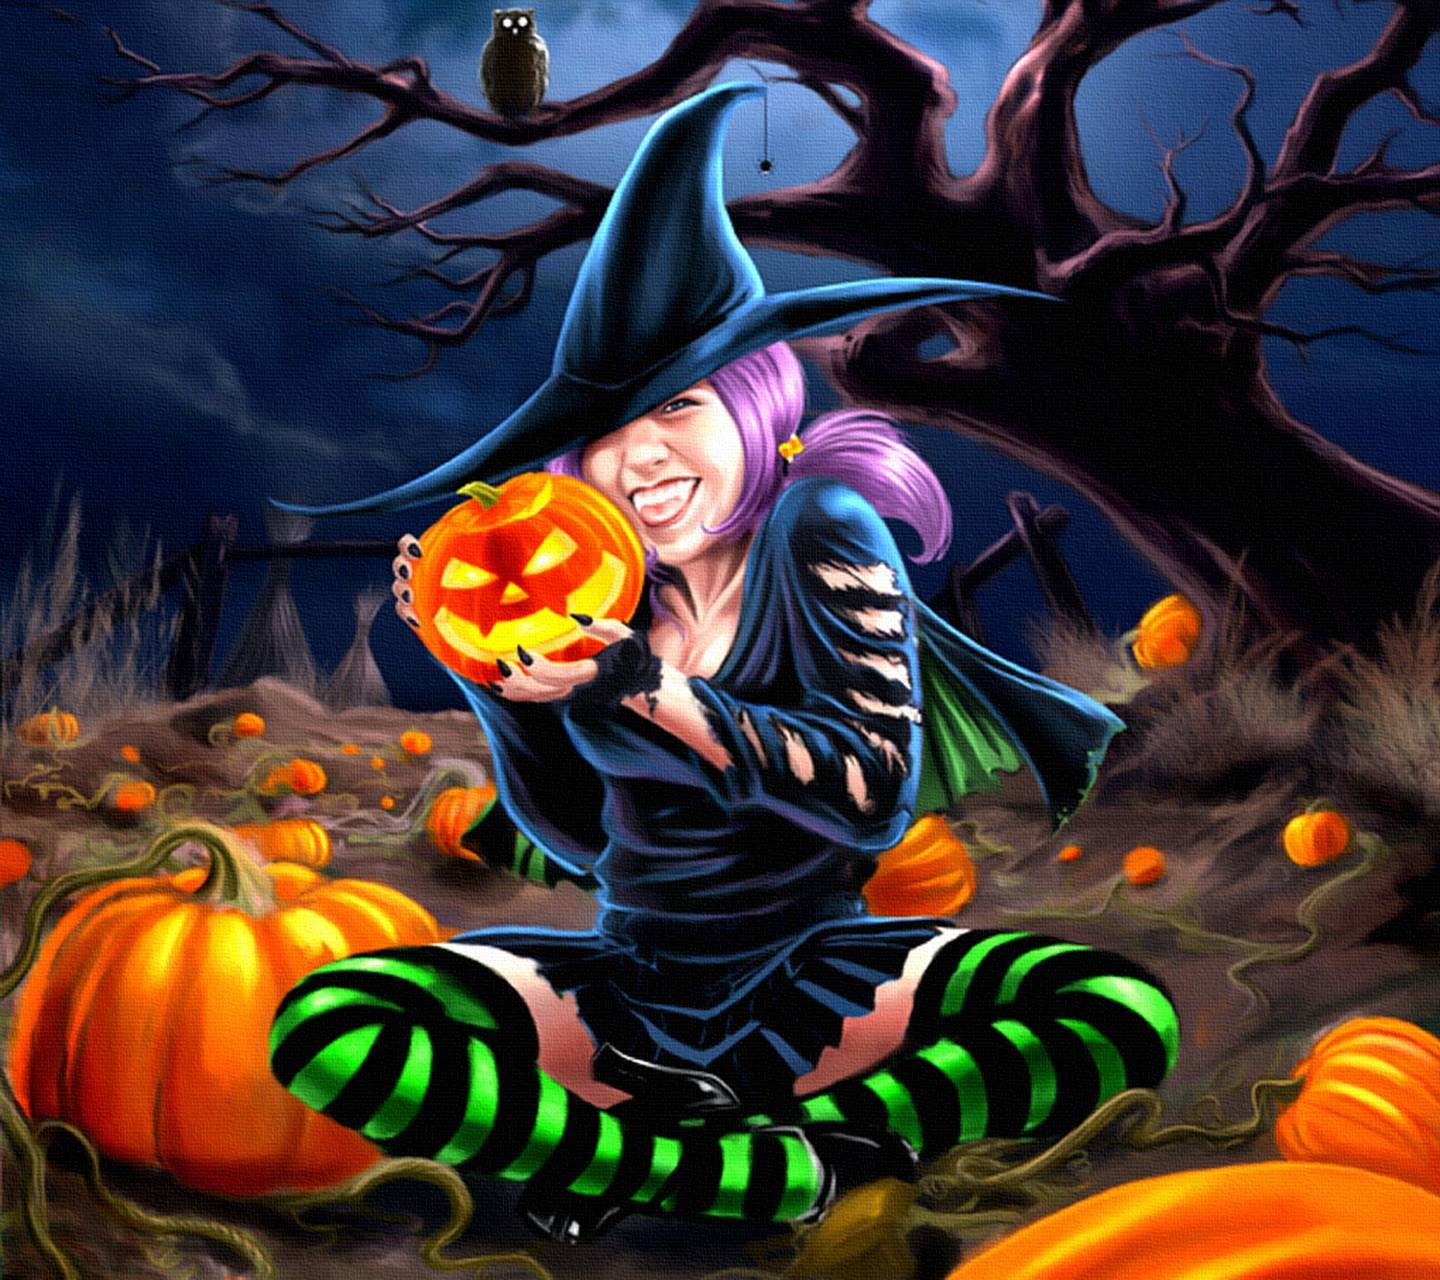 Pin By Priscilla Gibson On Halloween In 2020 Witch Wallpaper Halloween Painting Halloween Wallpaper